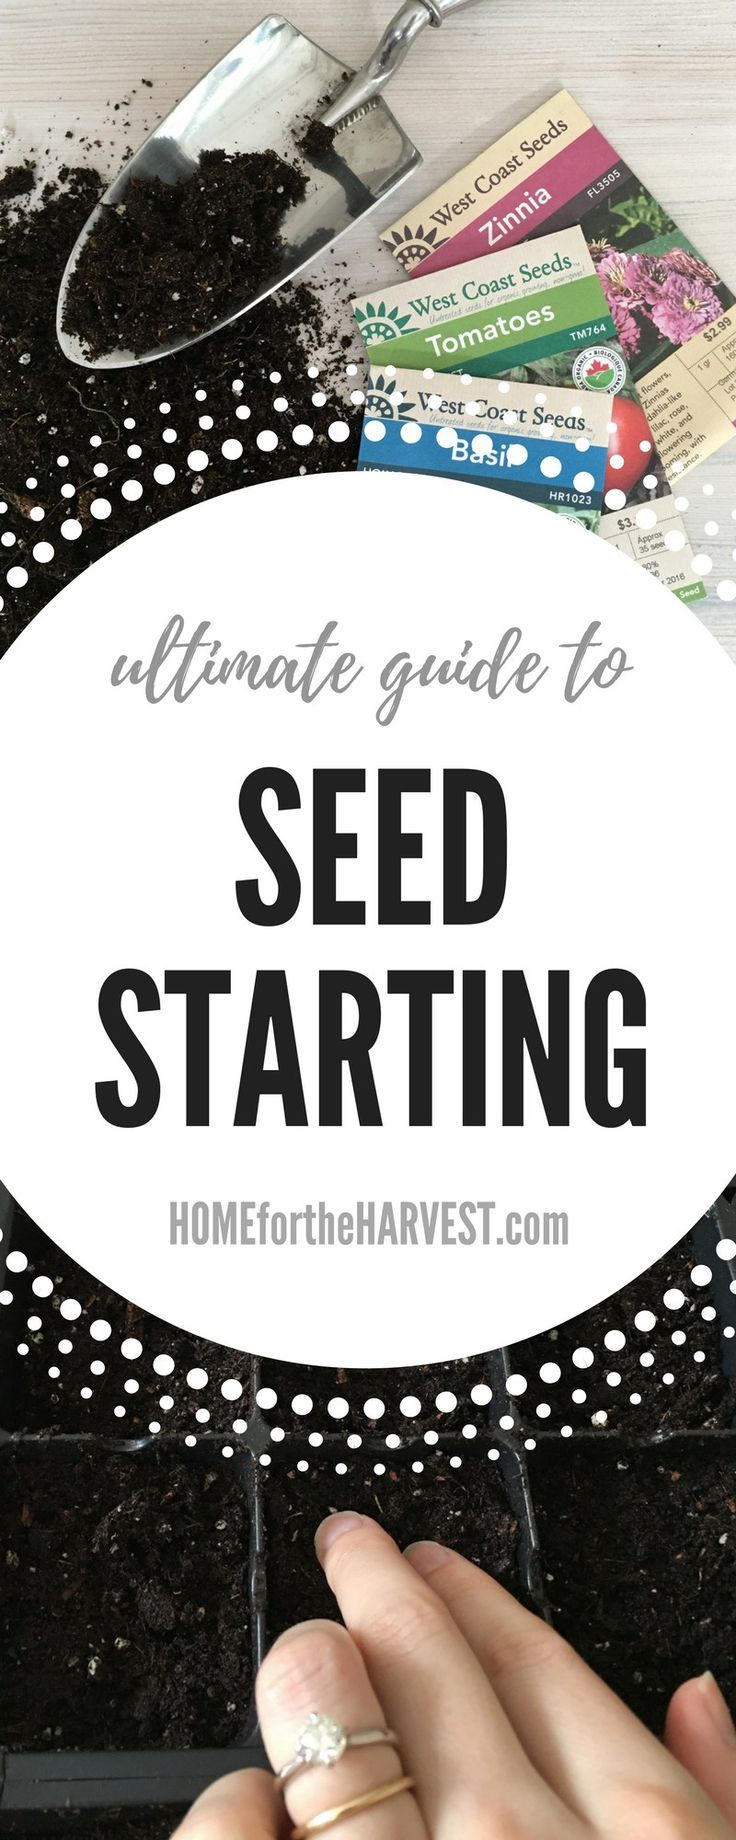 Seed Starting - The Ultimate Guide! Learn how to grow healthy plants from seeds with these simple, step-by-step instructions   Home for the Harvest #seedstarting #seed #seeds #heirloom #organicgardening #gardening #grownfromseed